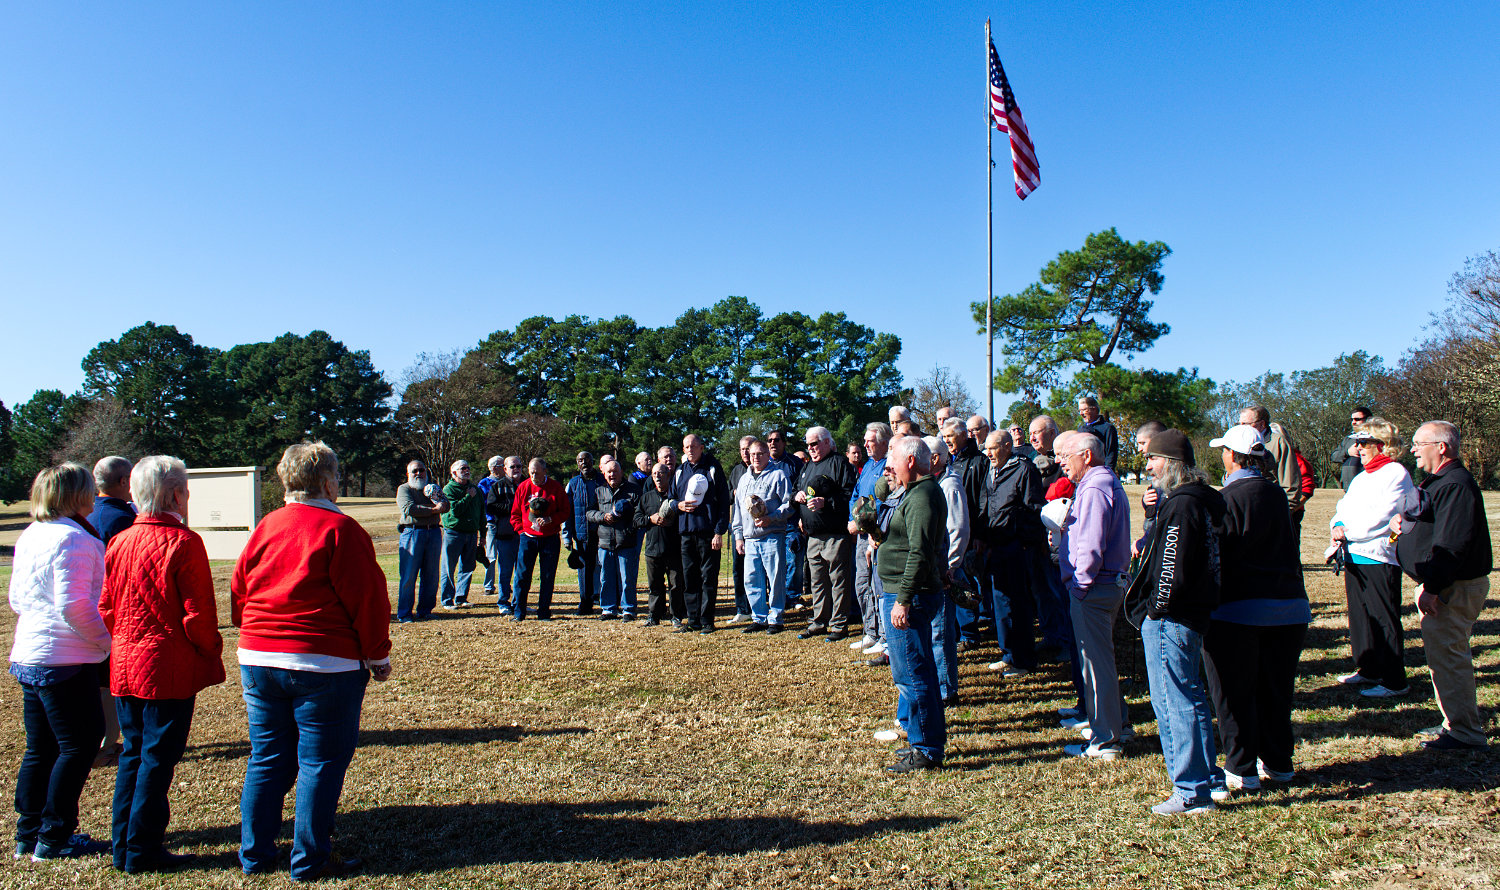 A group of military veterans gathers at the flag pole at the Mineola Country Club Friday morning for the singing of the National Anthem, along with a prayer and the Pledge of Allegiance, before teeing off in the club's annual veterans tournament (postponed from Monday, Nov. 11 due to inclement weather). Leading the singing were Shirley Frazier, Chris Black and Donna Kinstley.